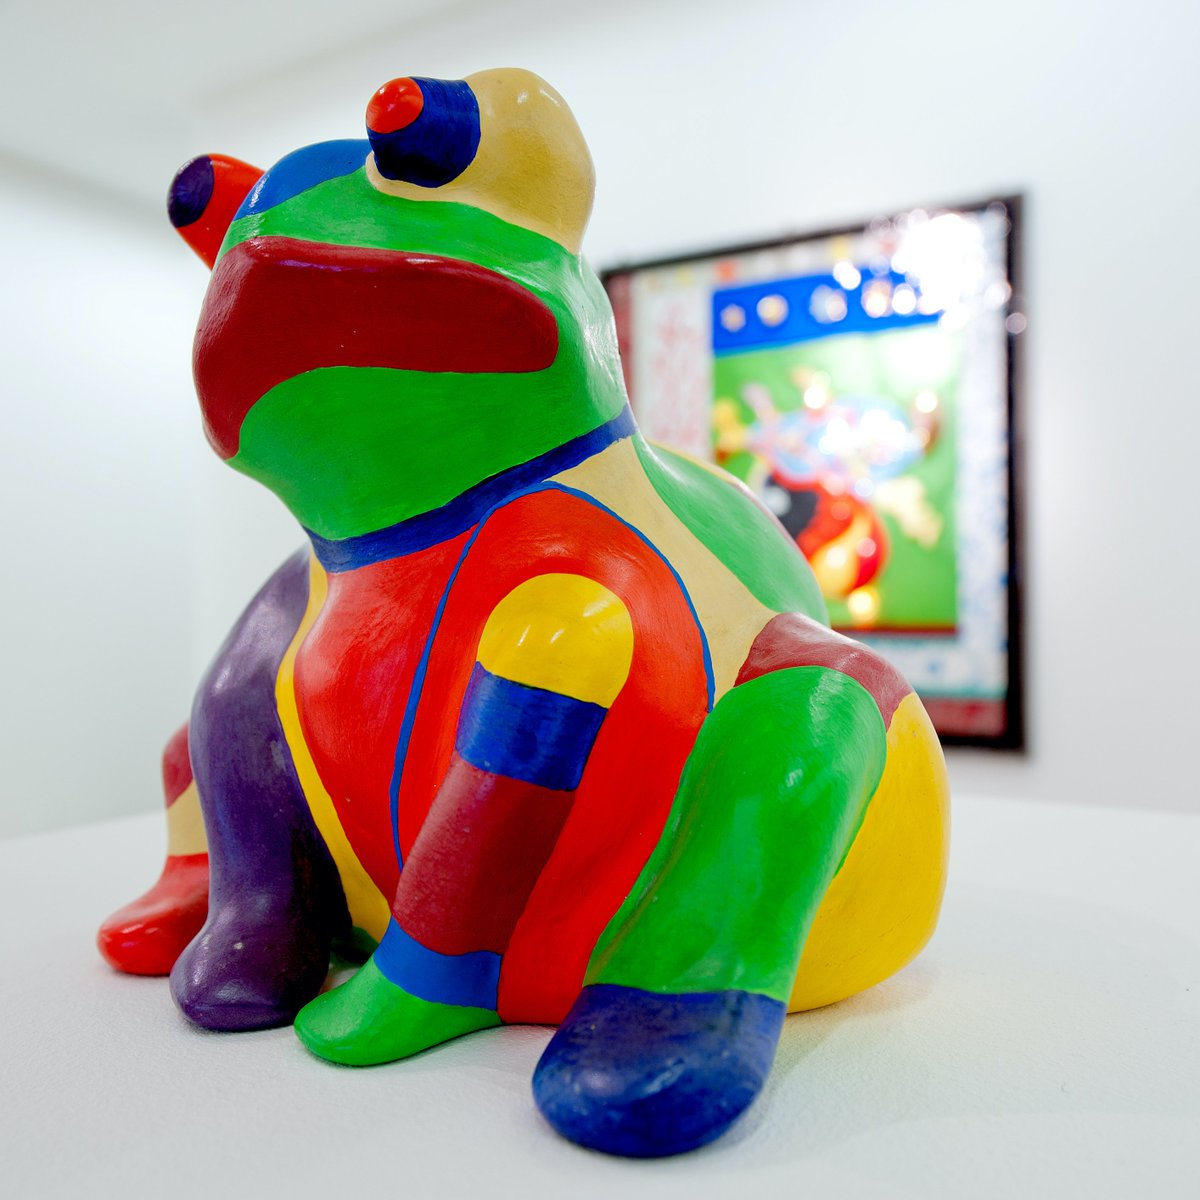 "HAPPY FRIDAY! Here's a frog for you to sweeten the deal!   Niki de Saint Phalle, ""Grenouillle"", 1974. Exhibited at Gimpel Fils in 2011. Photo: courtesy Gimpel Fils, London.  #NikideSaintPhalle #grenouille #frog #womanartist #outsiderart #animals #funart #makesmesmile #happyfriday<br>http://pic.twitter.com/p3KmXR9jOn"